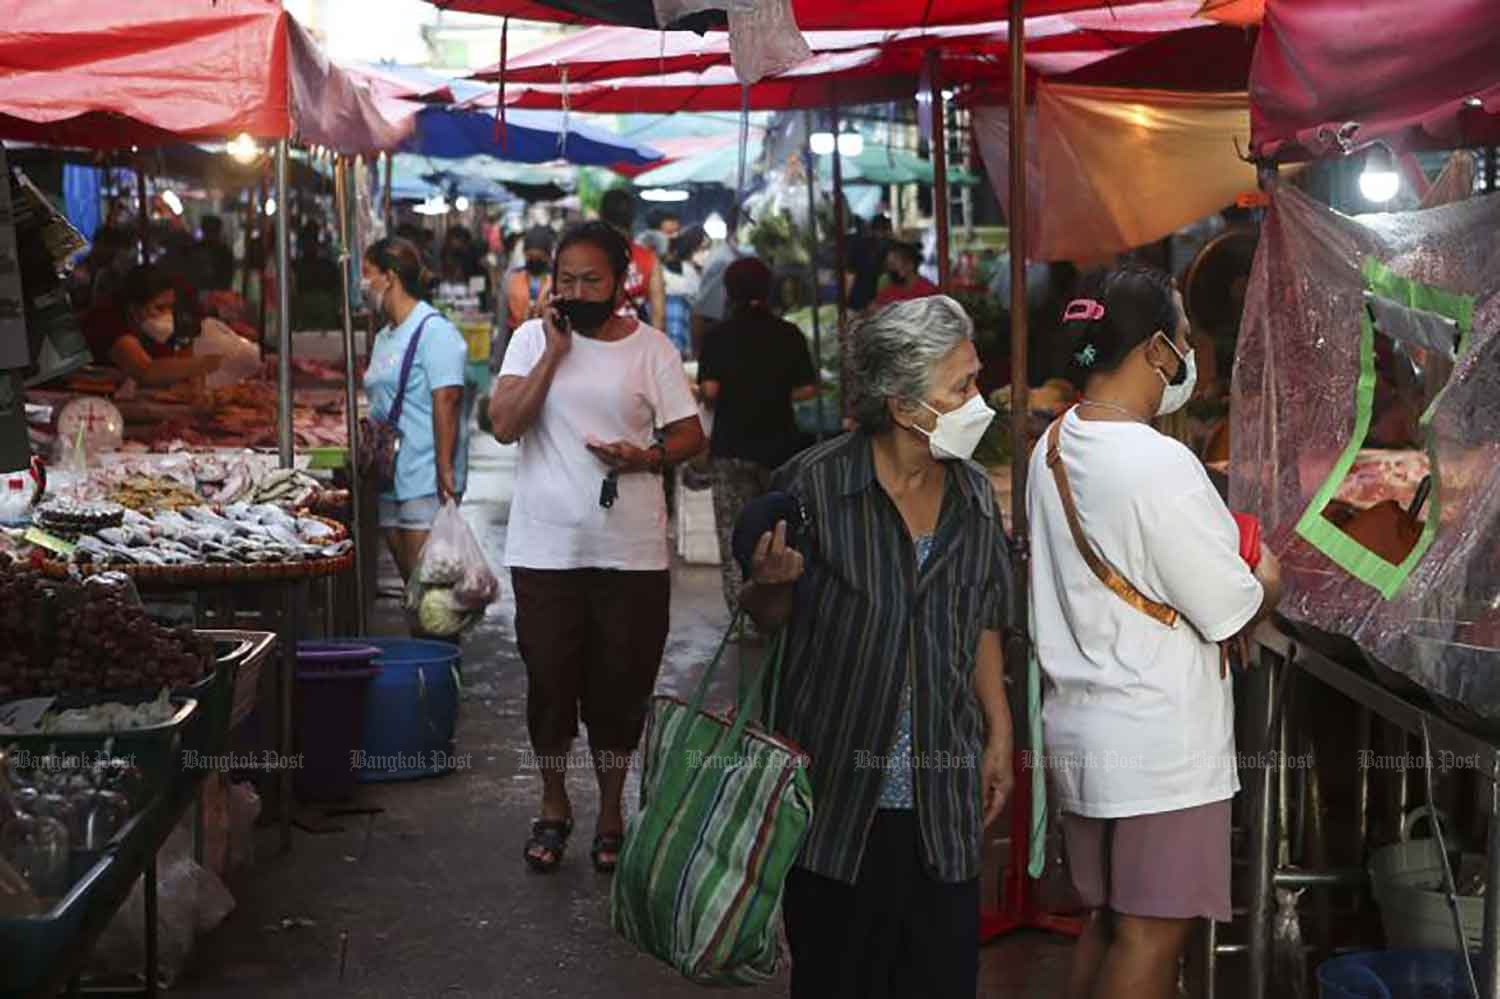 Daily shopping in Bang Buathong district of Nonthaburi on Wednesday. Some shoppers were seen without face masks even as the Department of Health ramps up public health measures at wet markets and conducts mass testing to control Covid-19. (Photo: Pattarapong Chatpattarawsill)